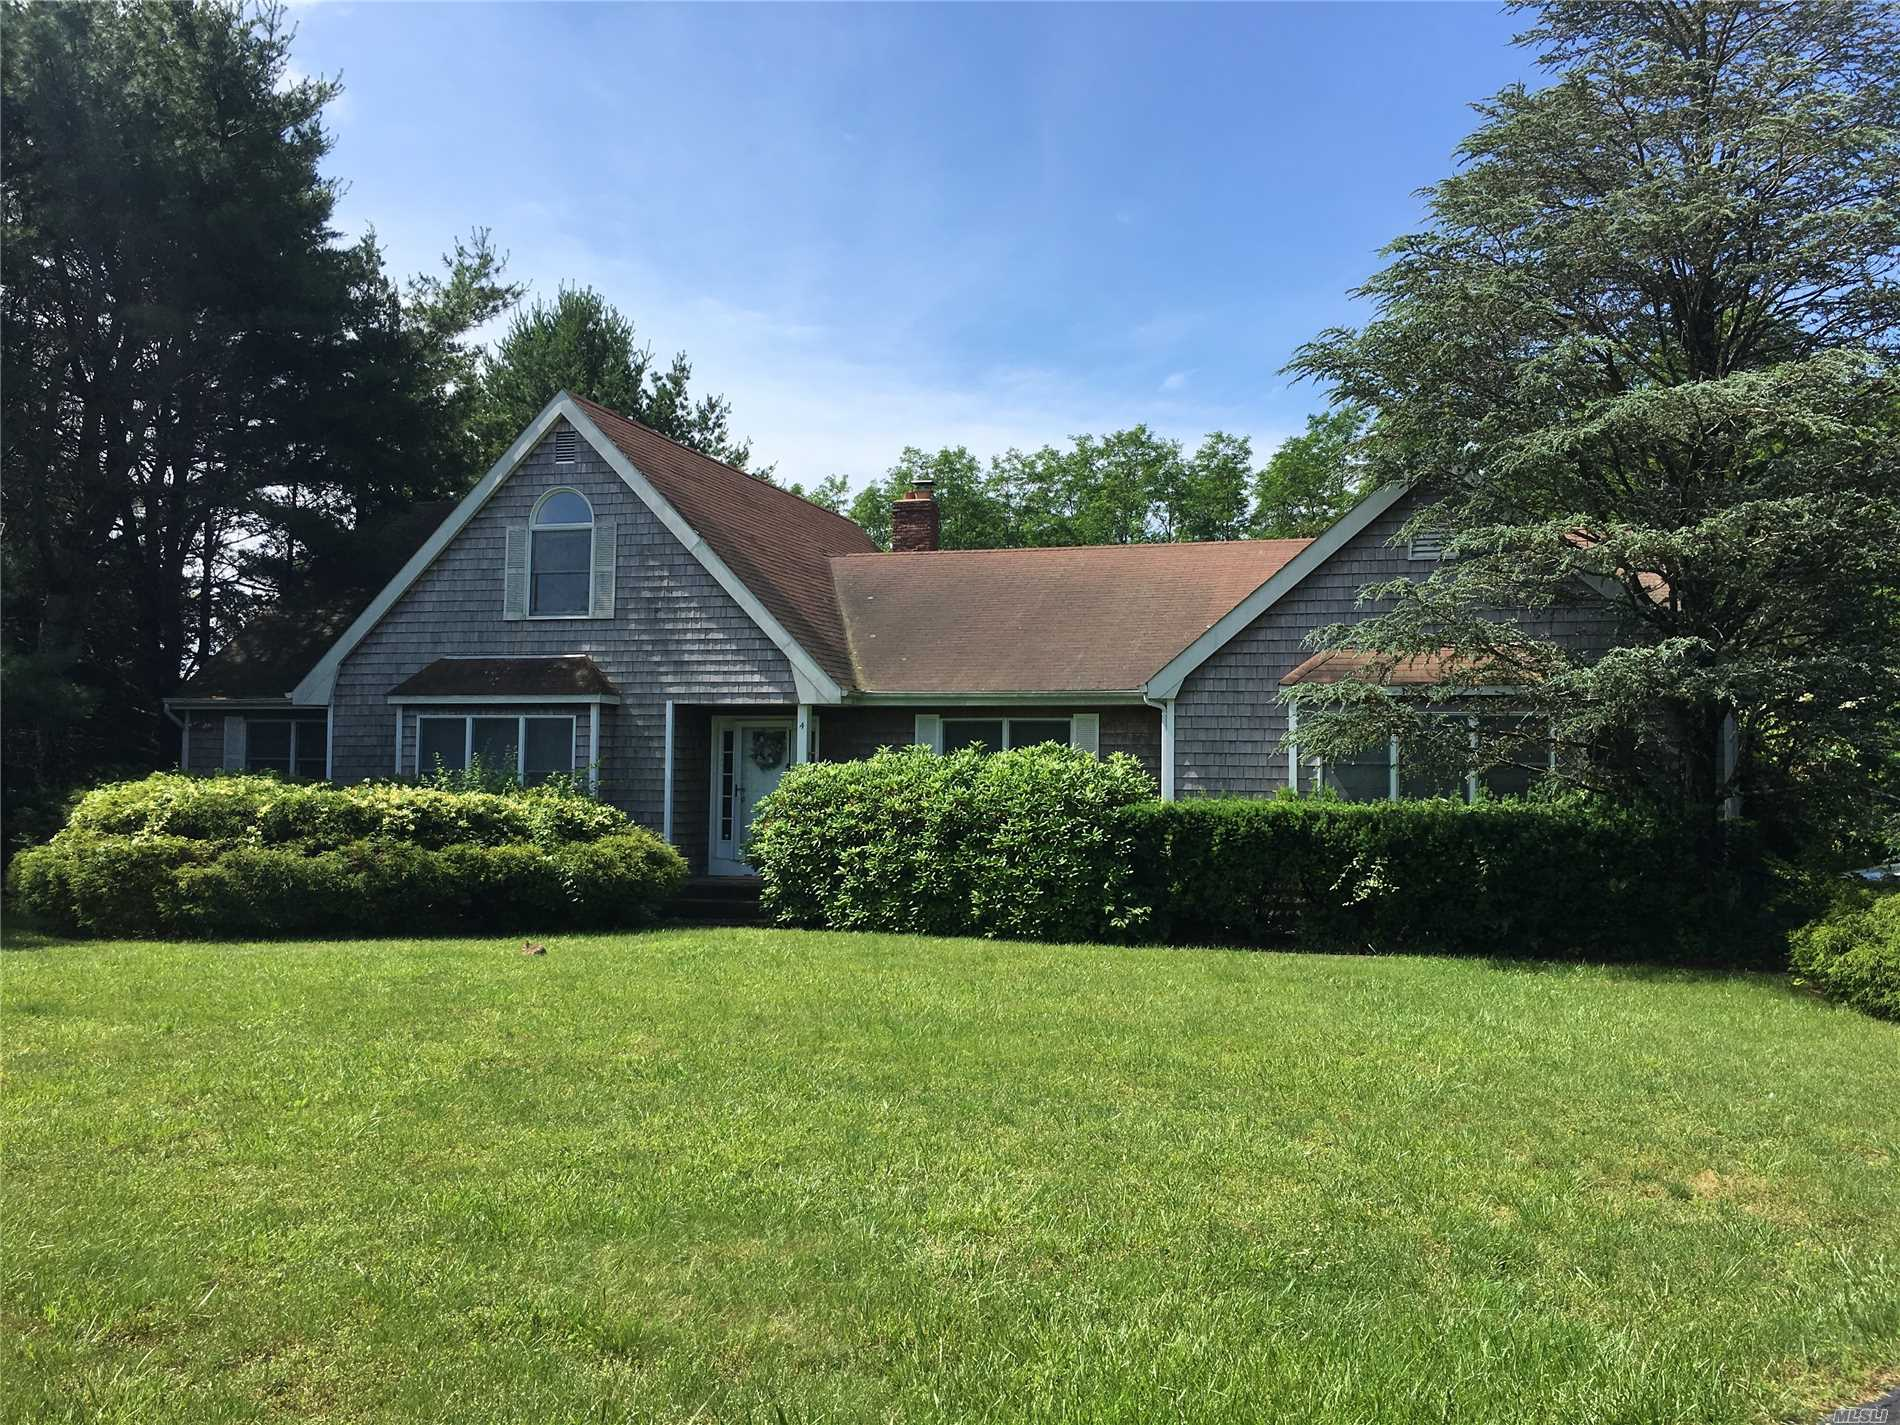 Beautiful Spacious Contemporary!! South Manor Schools. Features Four Bedrooms W Master, Private Cul-De-Sac, Almost Full Acre! Must See!